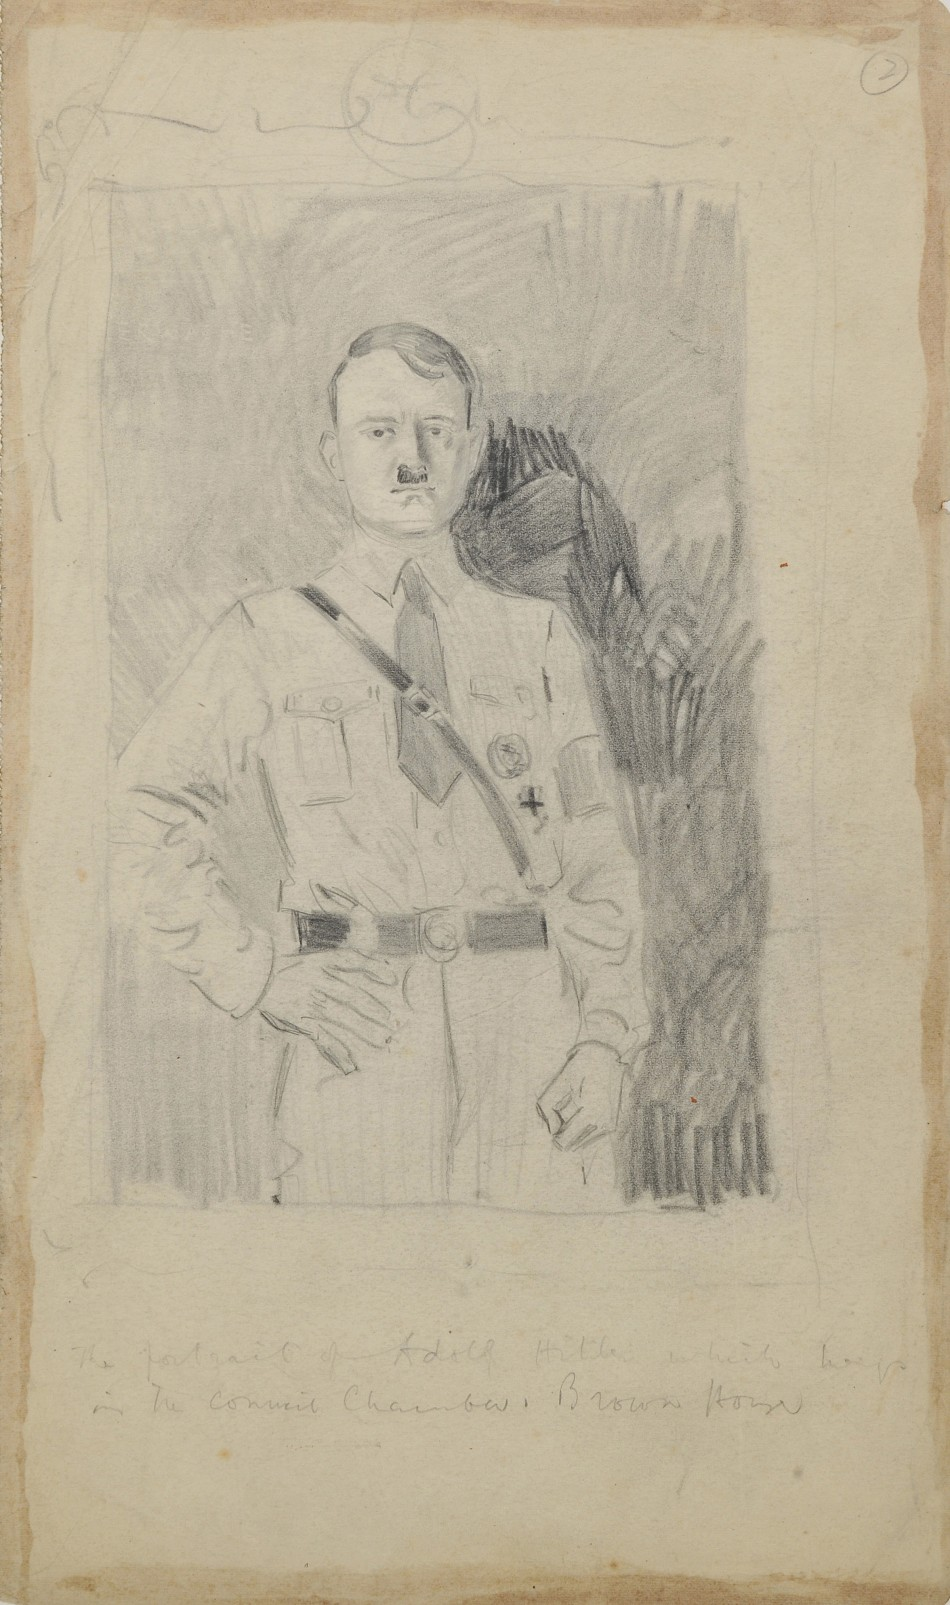 Drawings of Hitler and his henchmen sketched in the early days of the Nazi party by British artist Helen McKie have emerged.